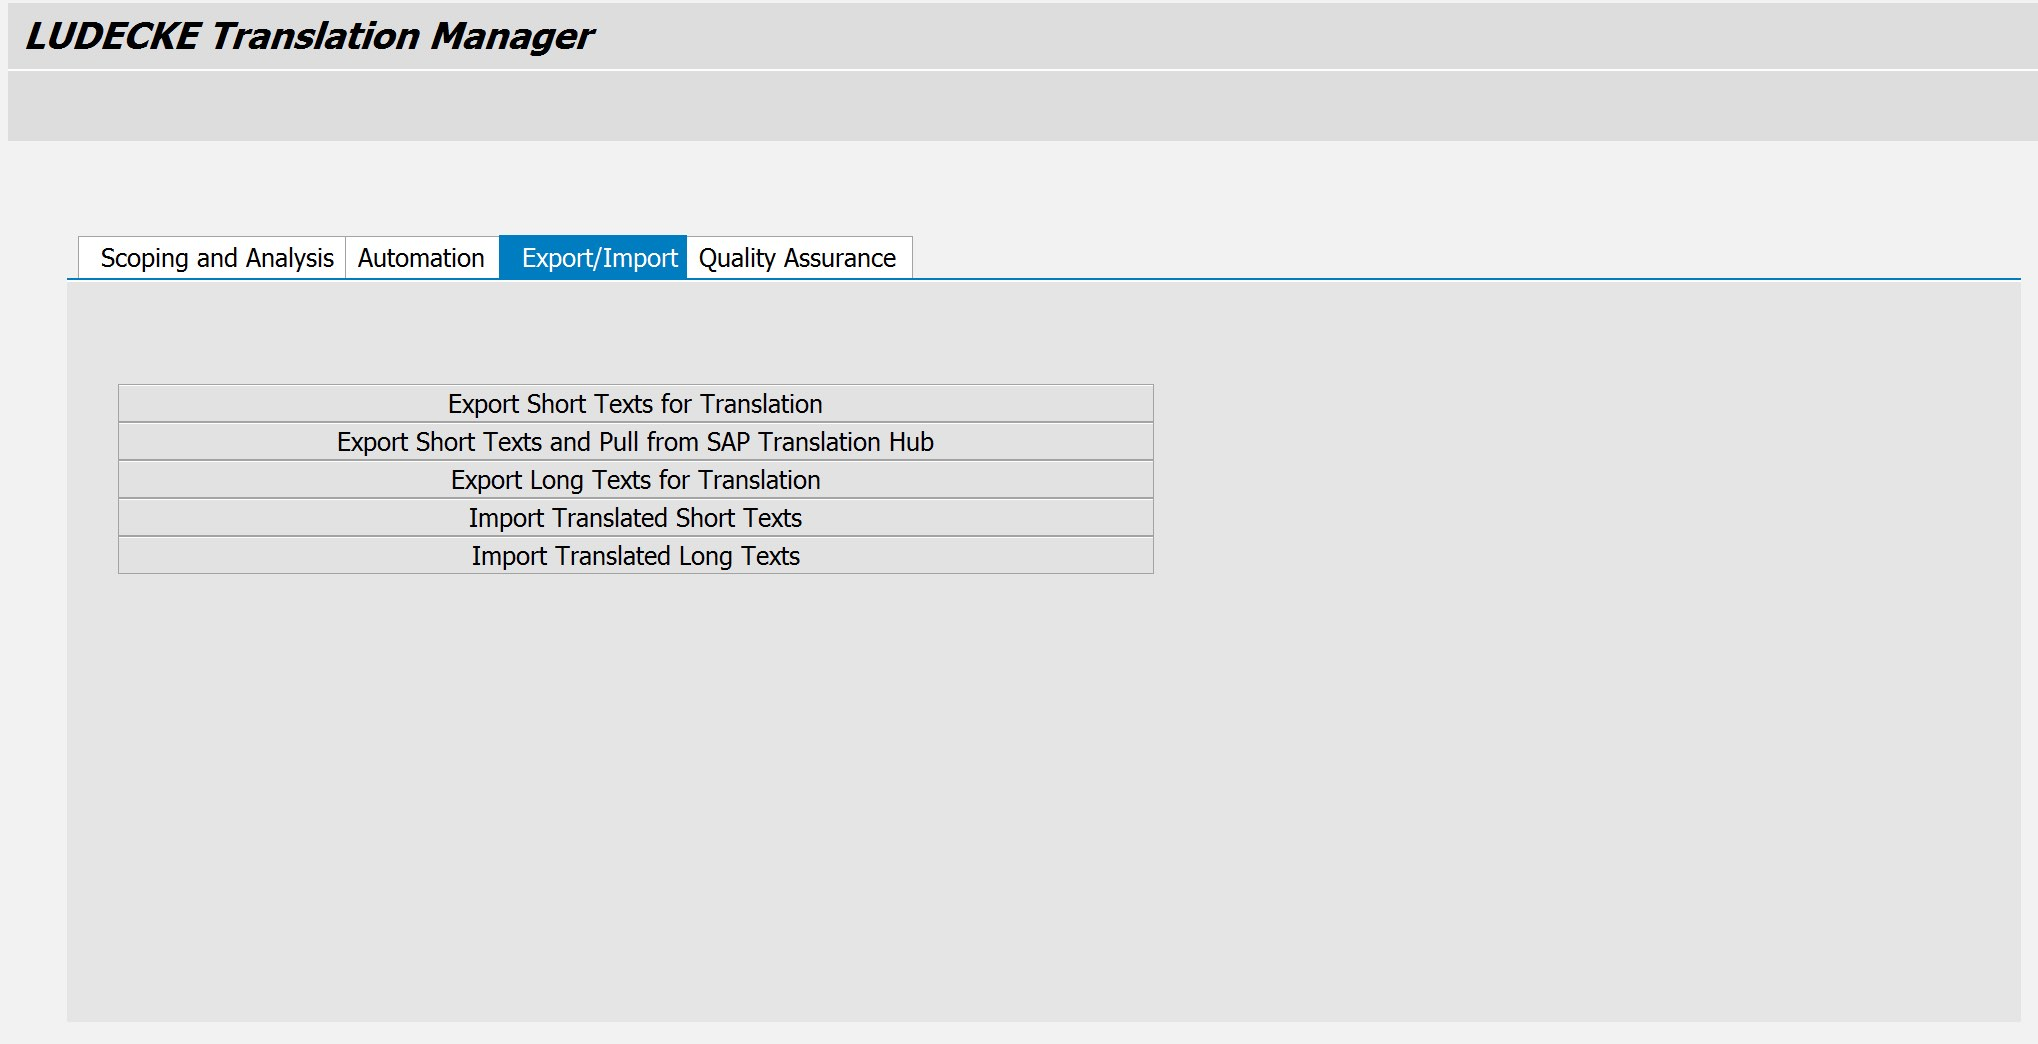 LUDECKE Translation Manager covers four main areas.